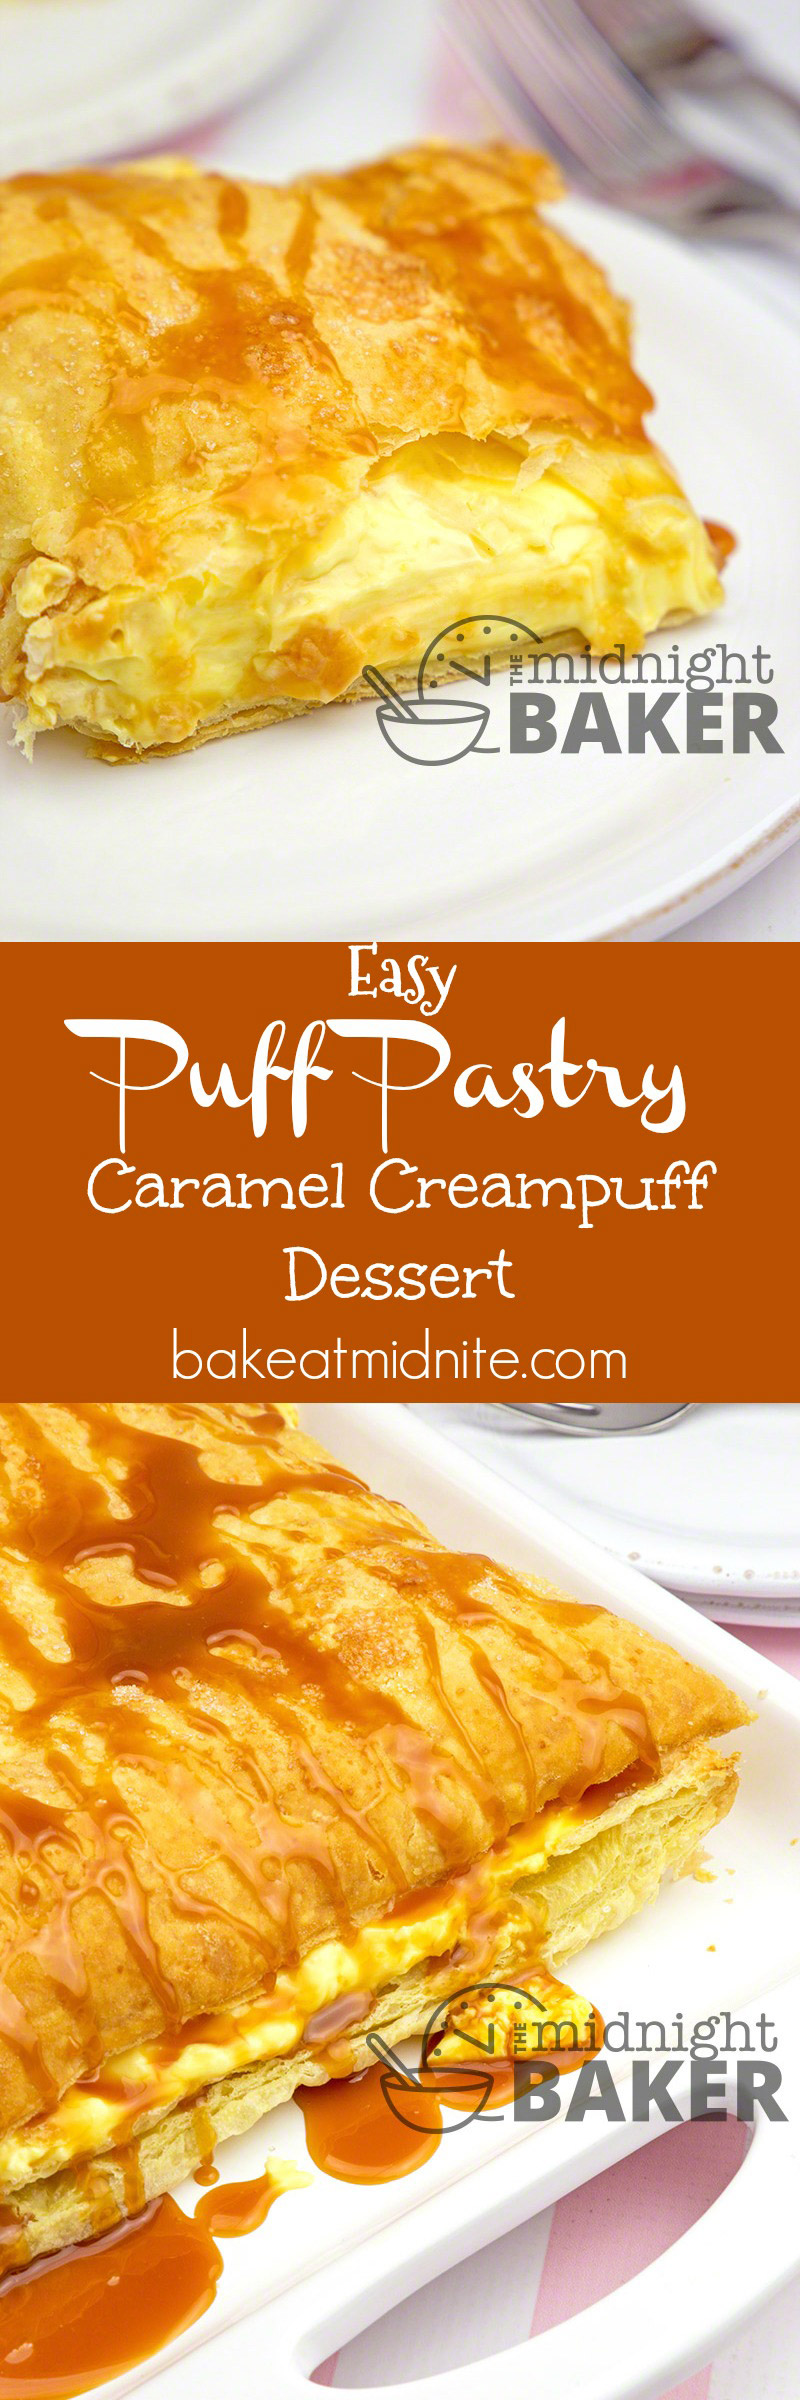 All you need is a frozen puff pastry sheet, vanilla pudding and caramel ice cream sauce to make this delicious, easy and quickie dessert!